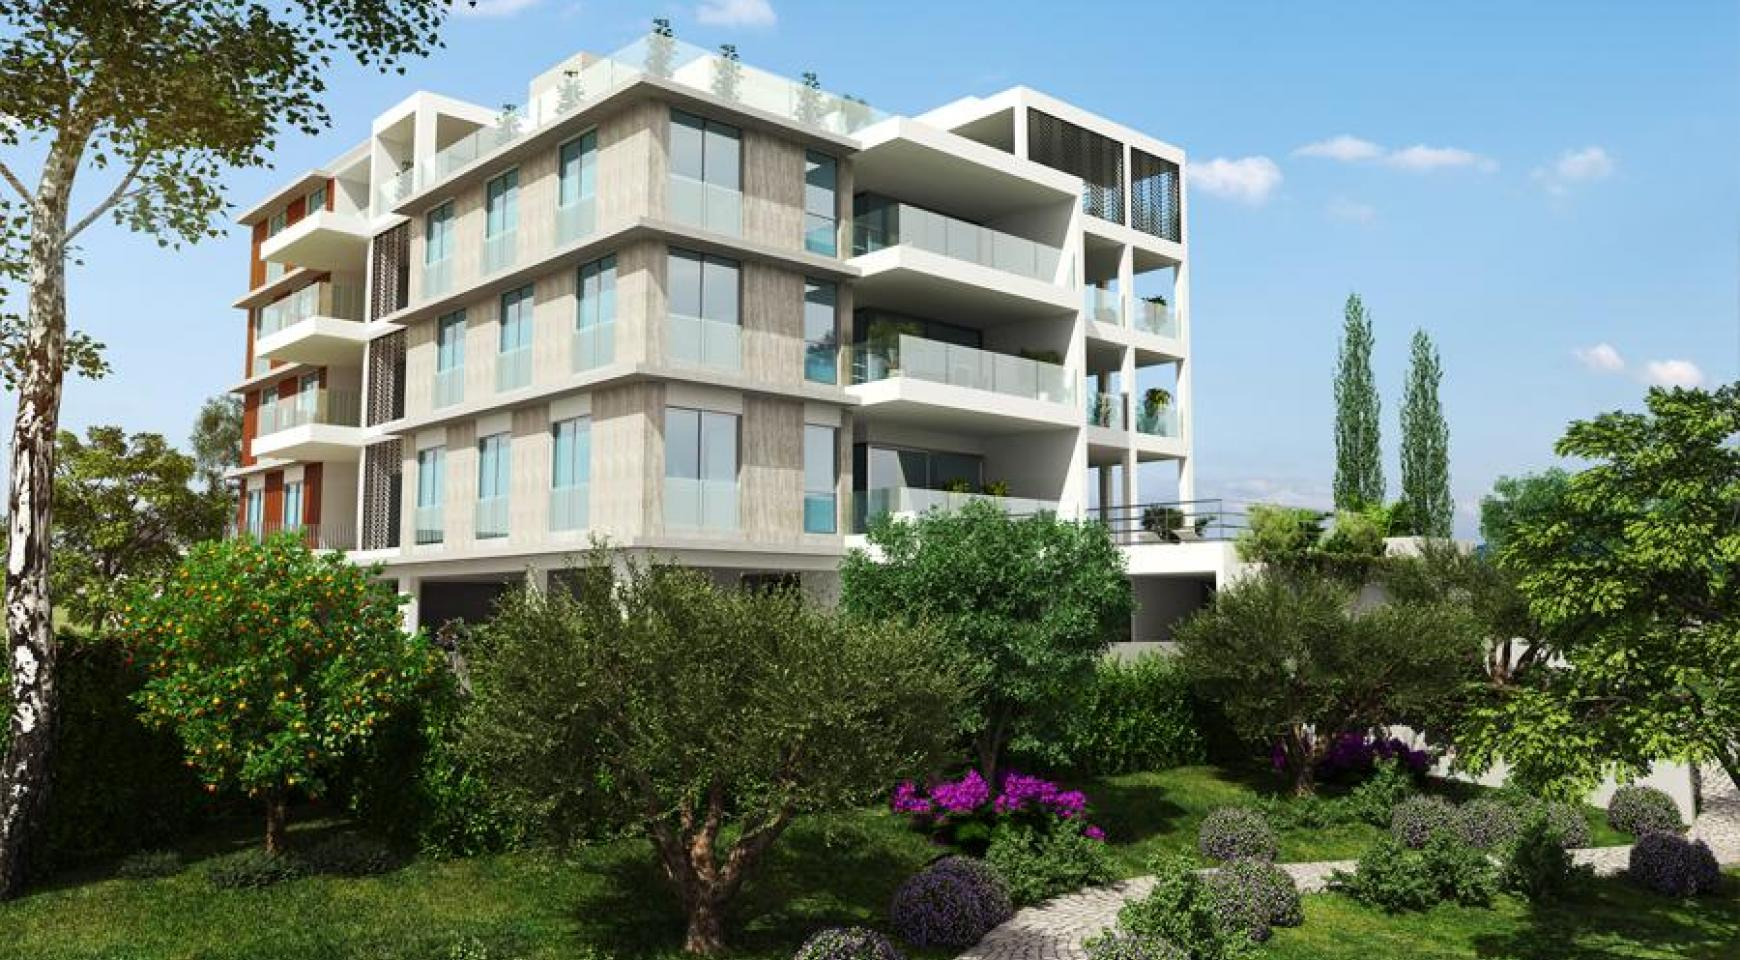 Spacious 3 Bedroom Apartment with Private Garden - 3